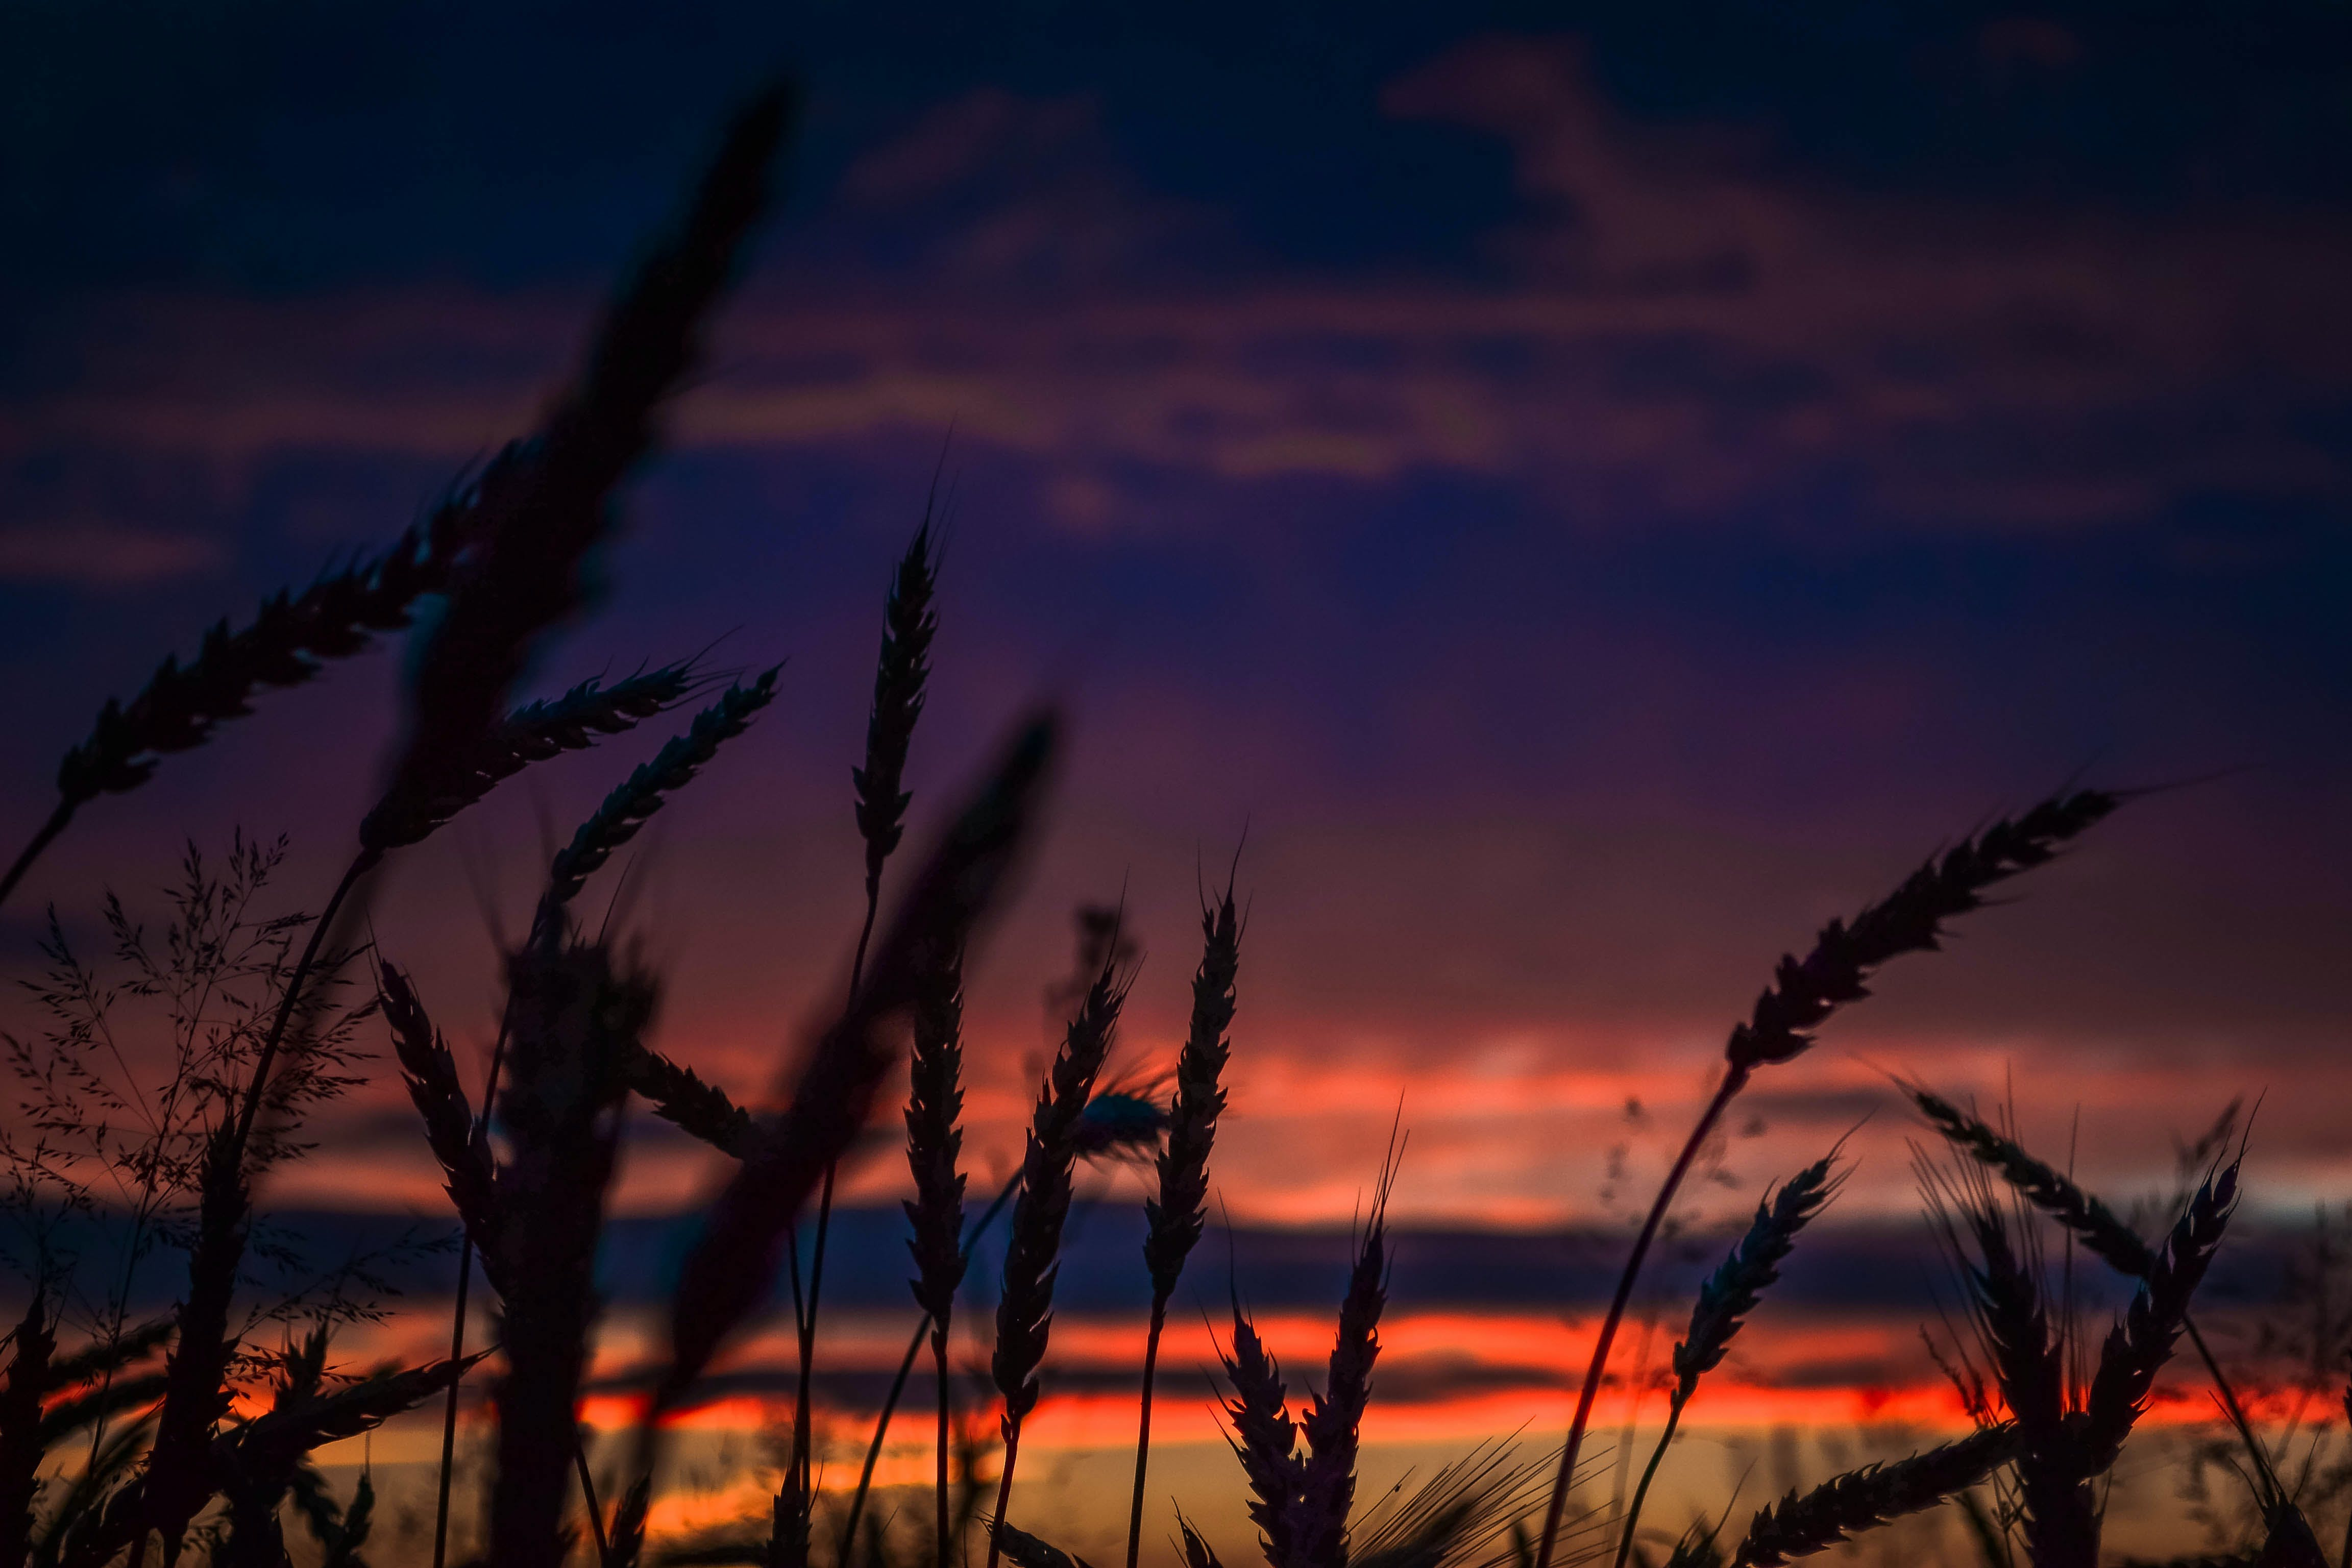 Silhouette of Wheats during Dawn in Landscape Photography